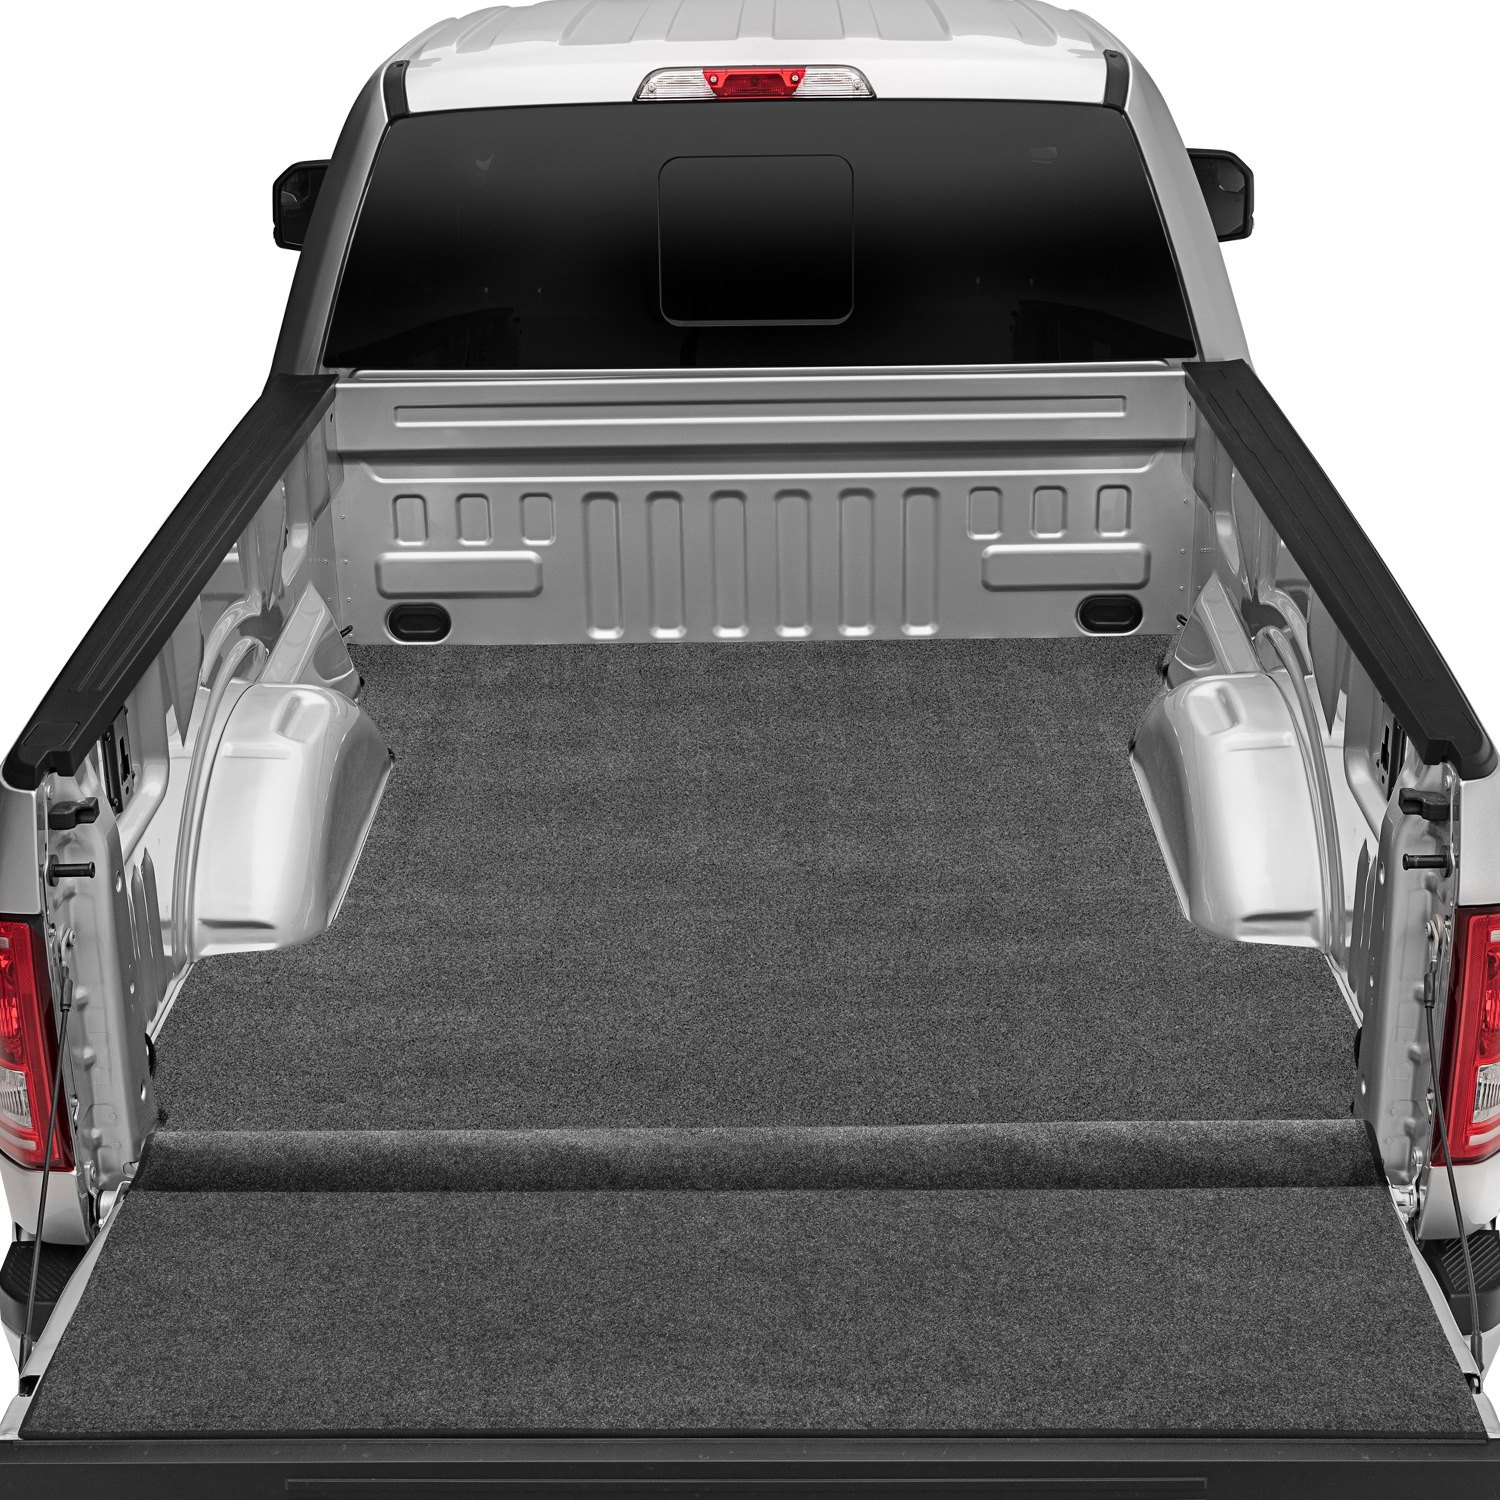 buy cheap BedRug® XLTBMT02LBS - XLT Bed Mat for Non or Spray-In Liner for 2015 RAM 1500 TRUCK Ebay & Amazon